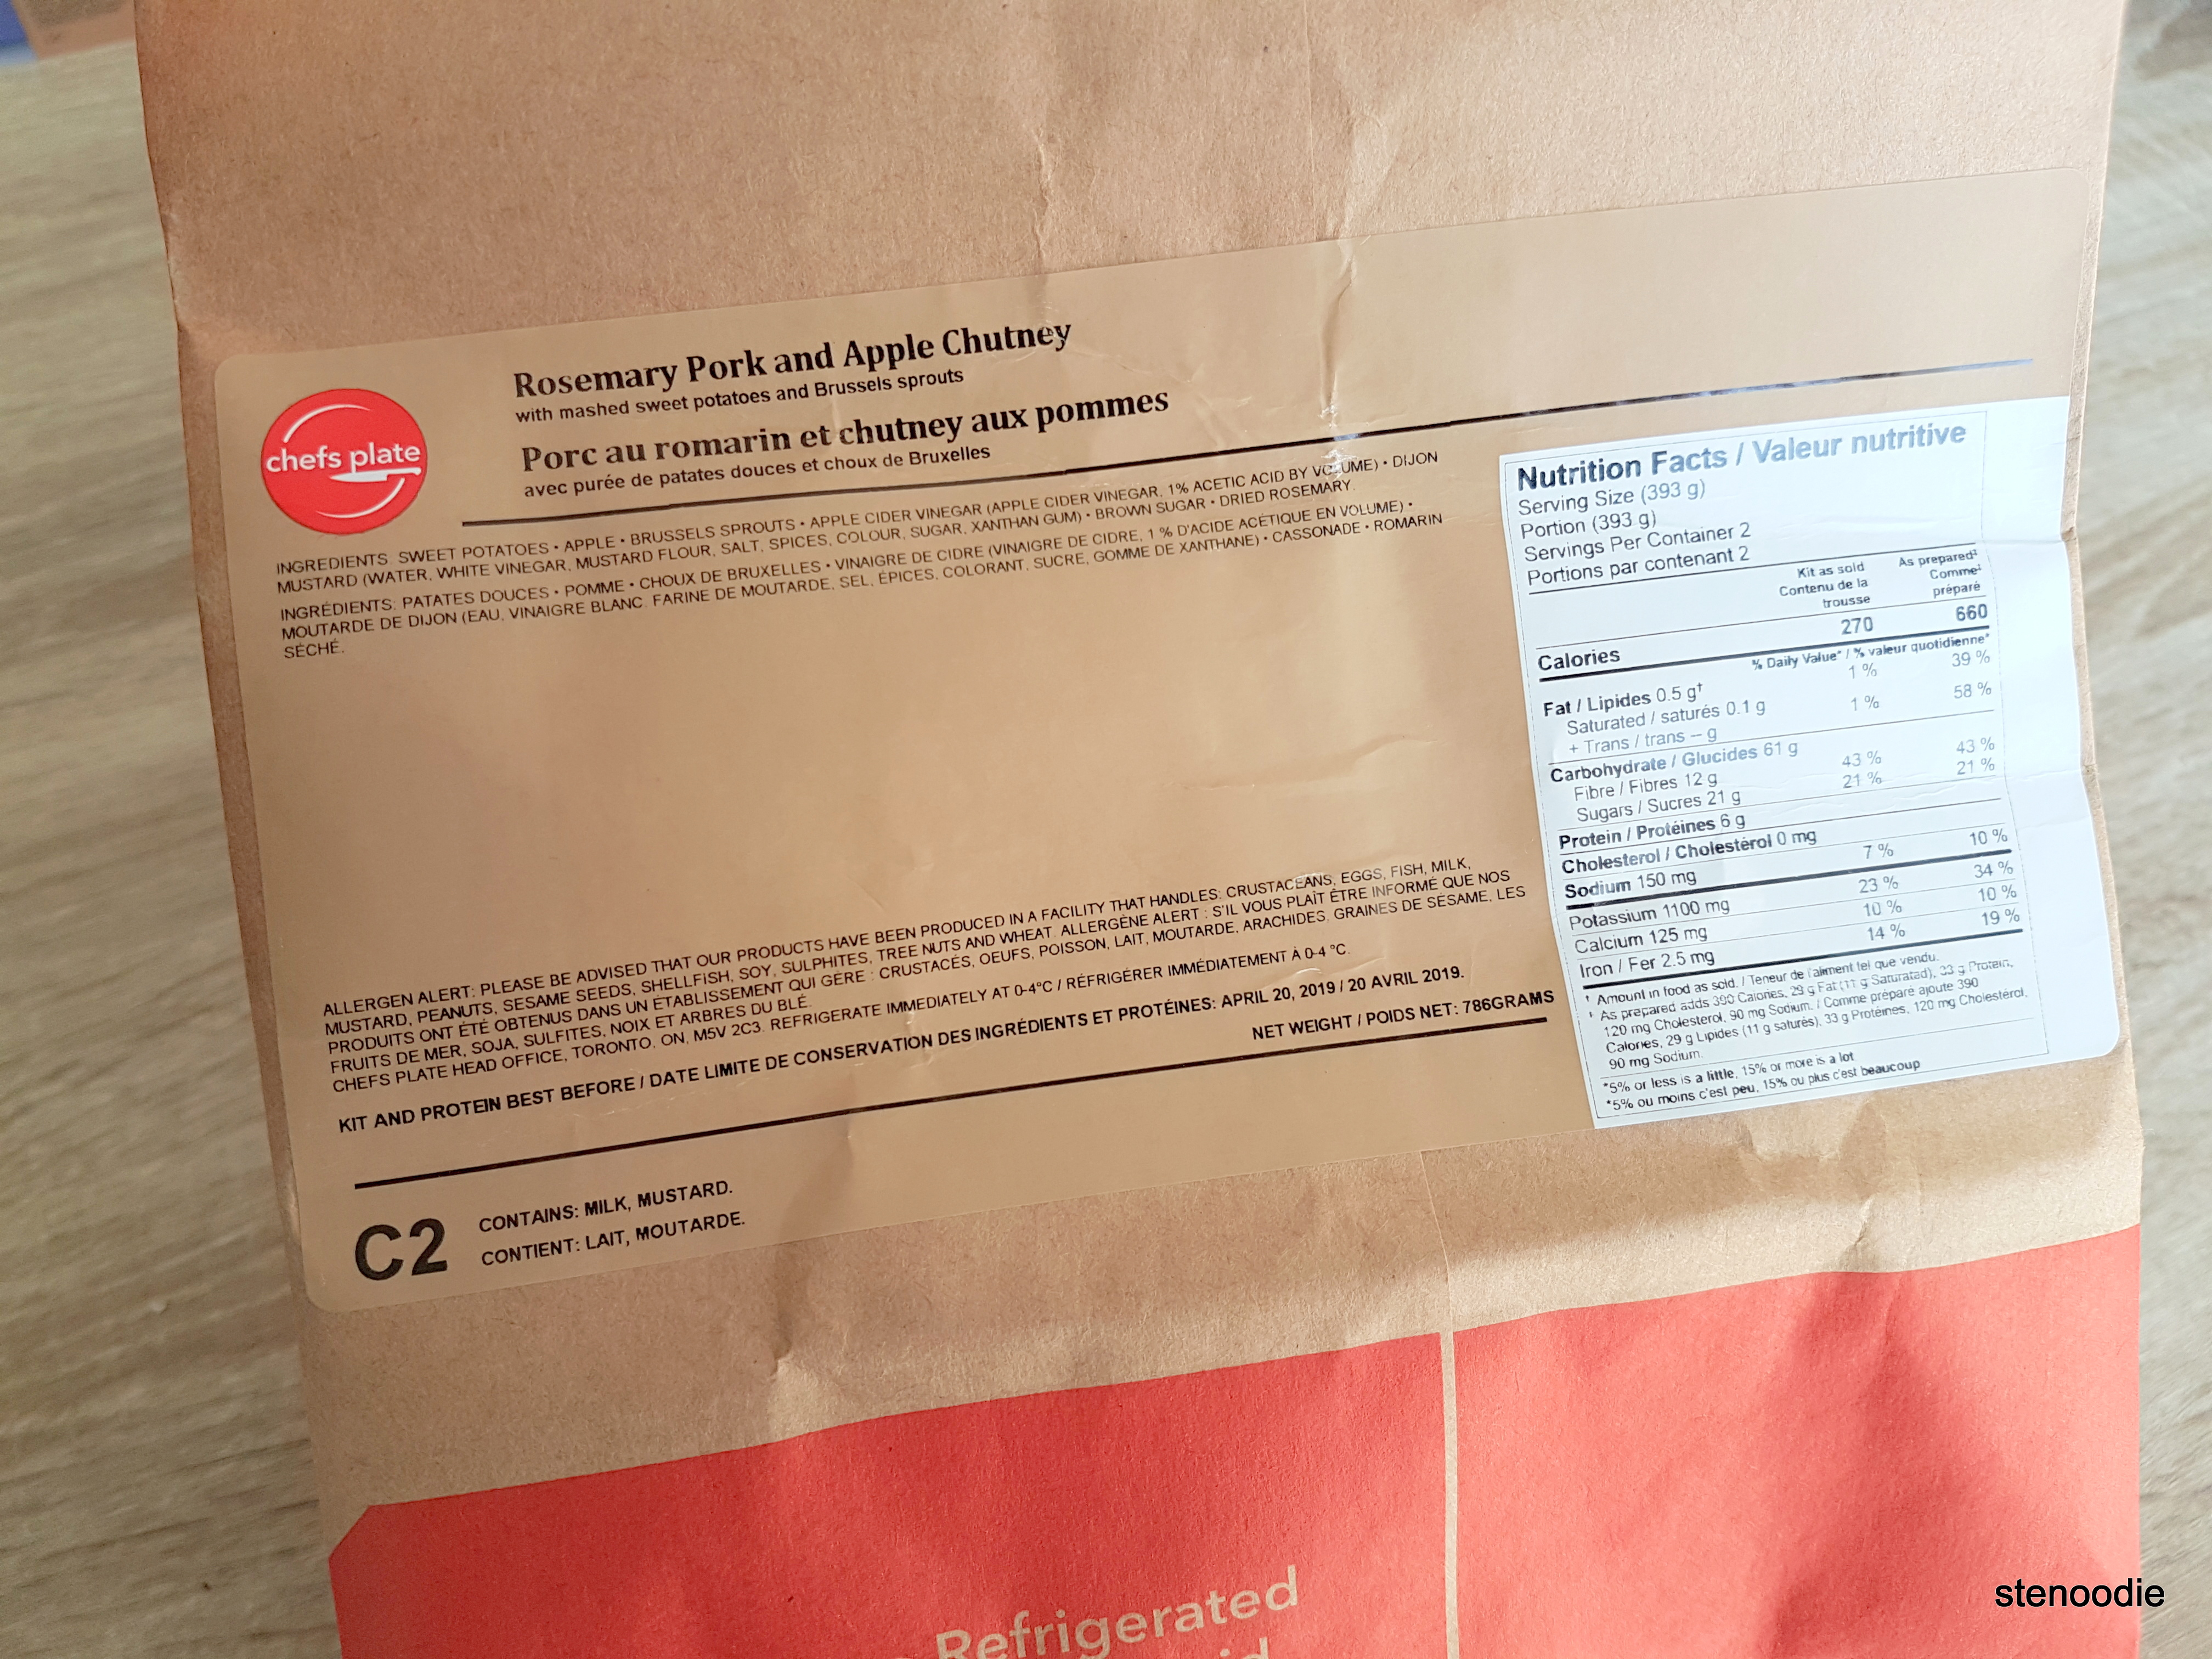 Nutrition facts for Rosemary Pork and Apple Chutney